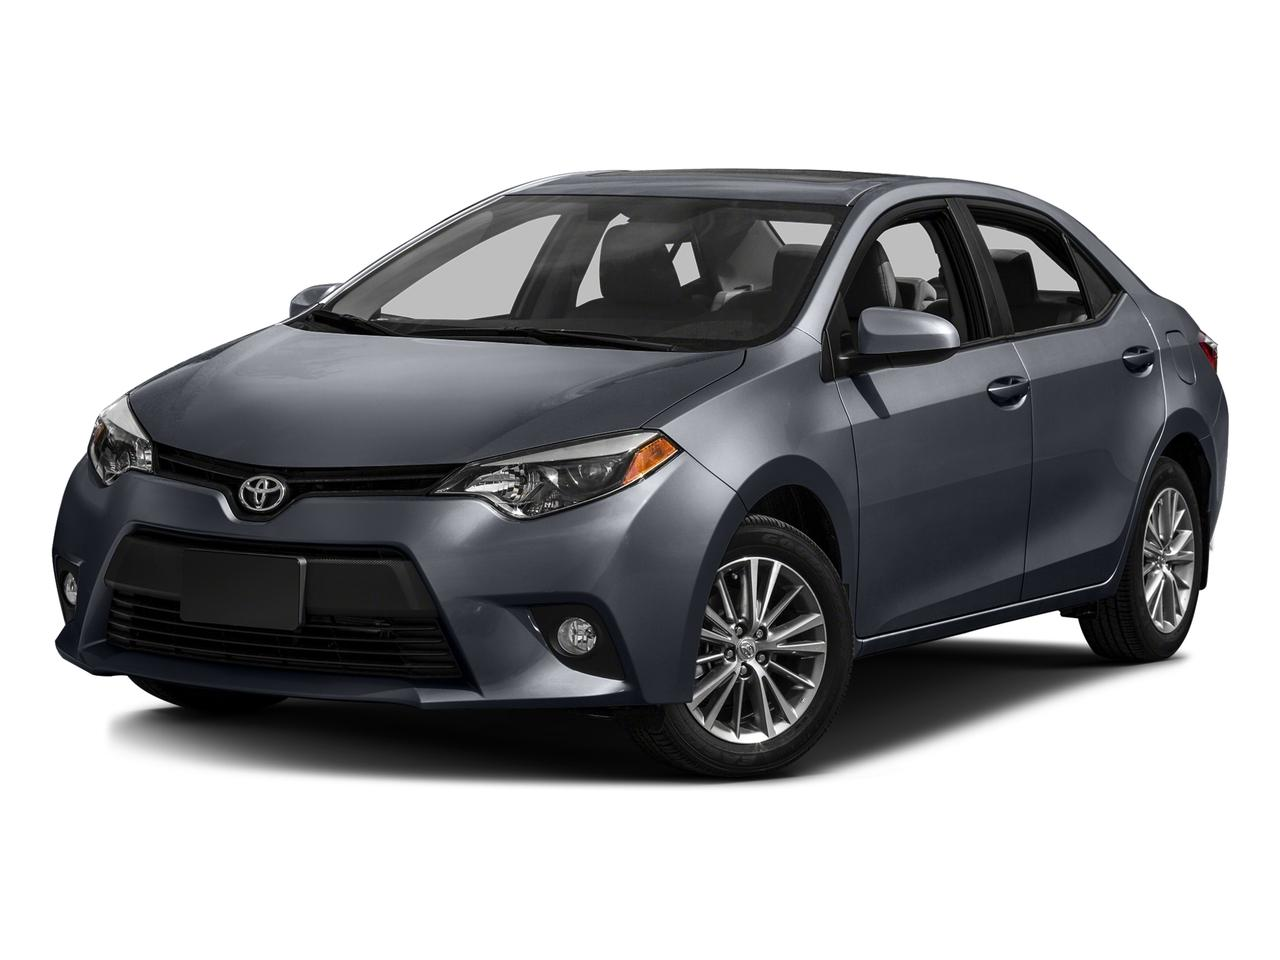 2016 Toyota Corolla Vehicle Photo in Midland, TX 79703